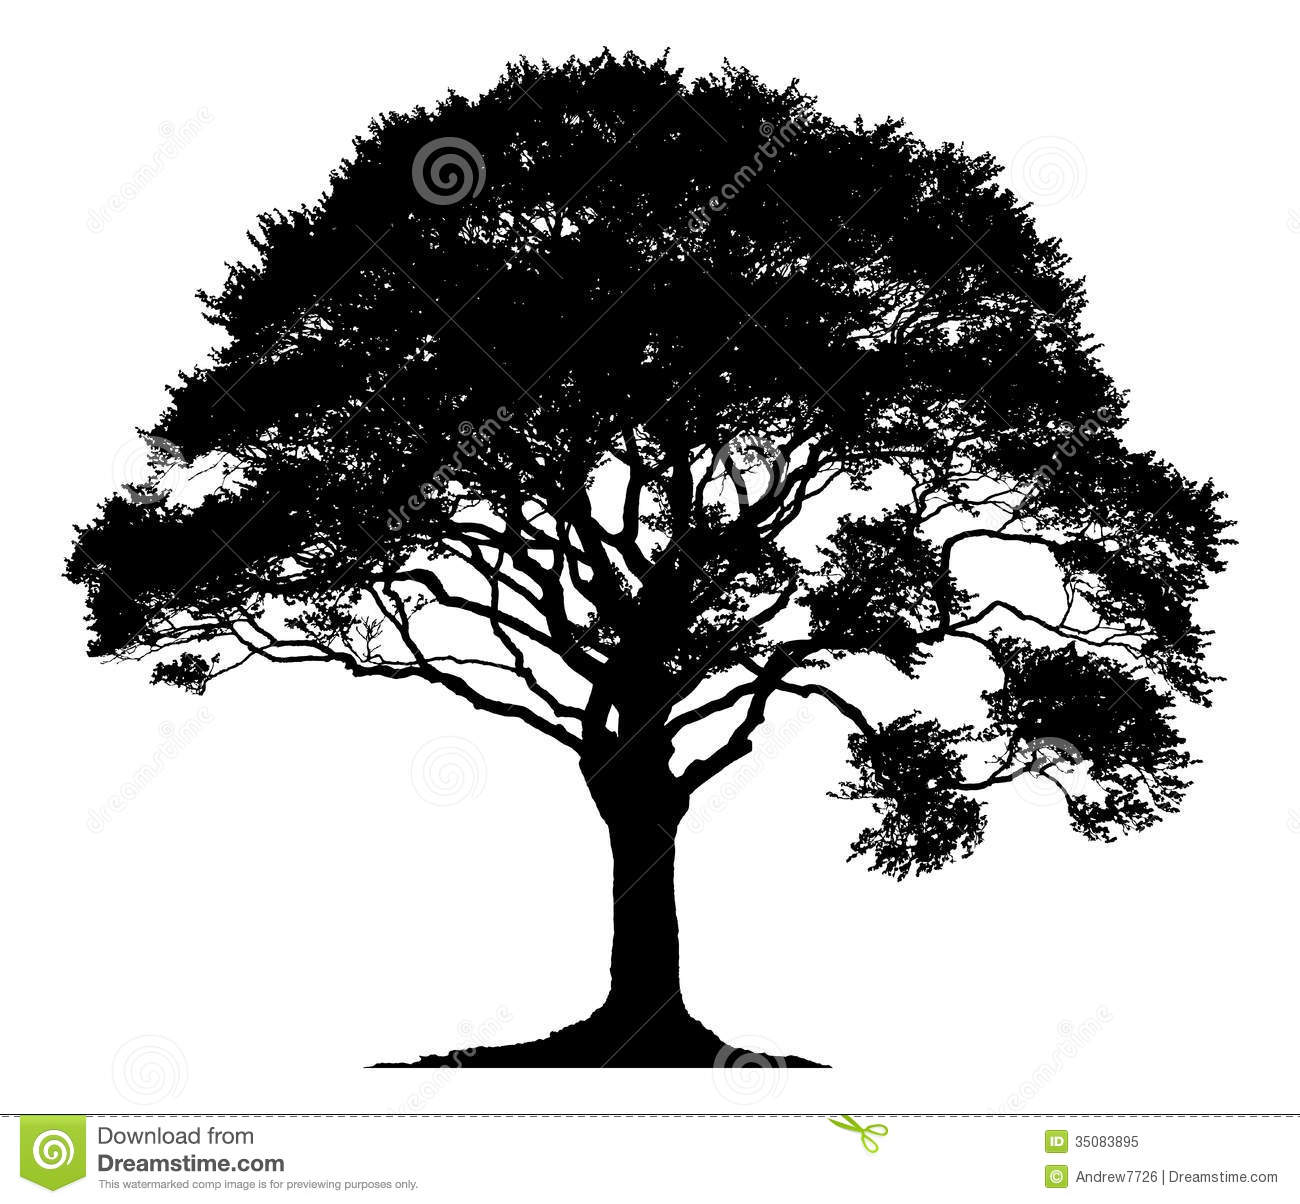 Lone tree clipart africa.